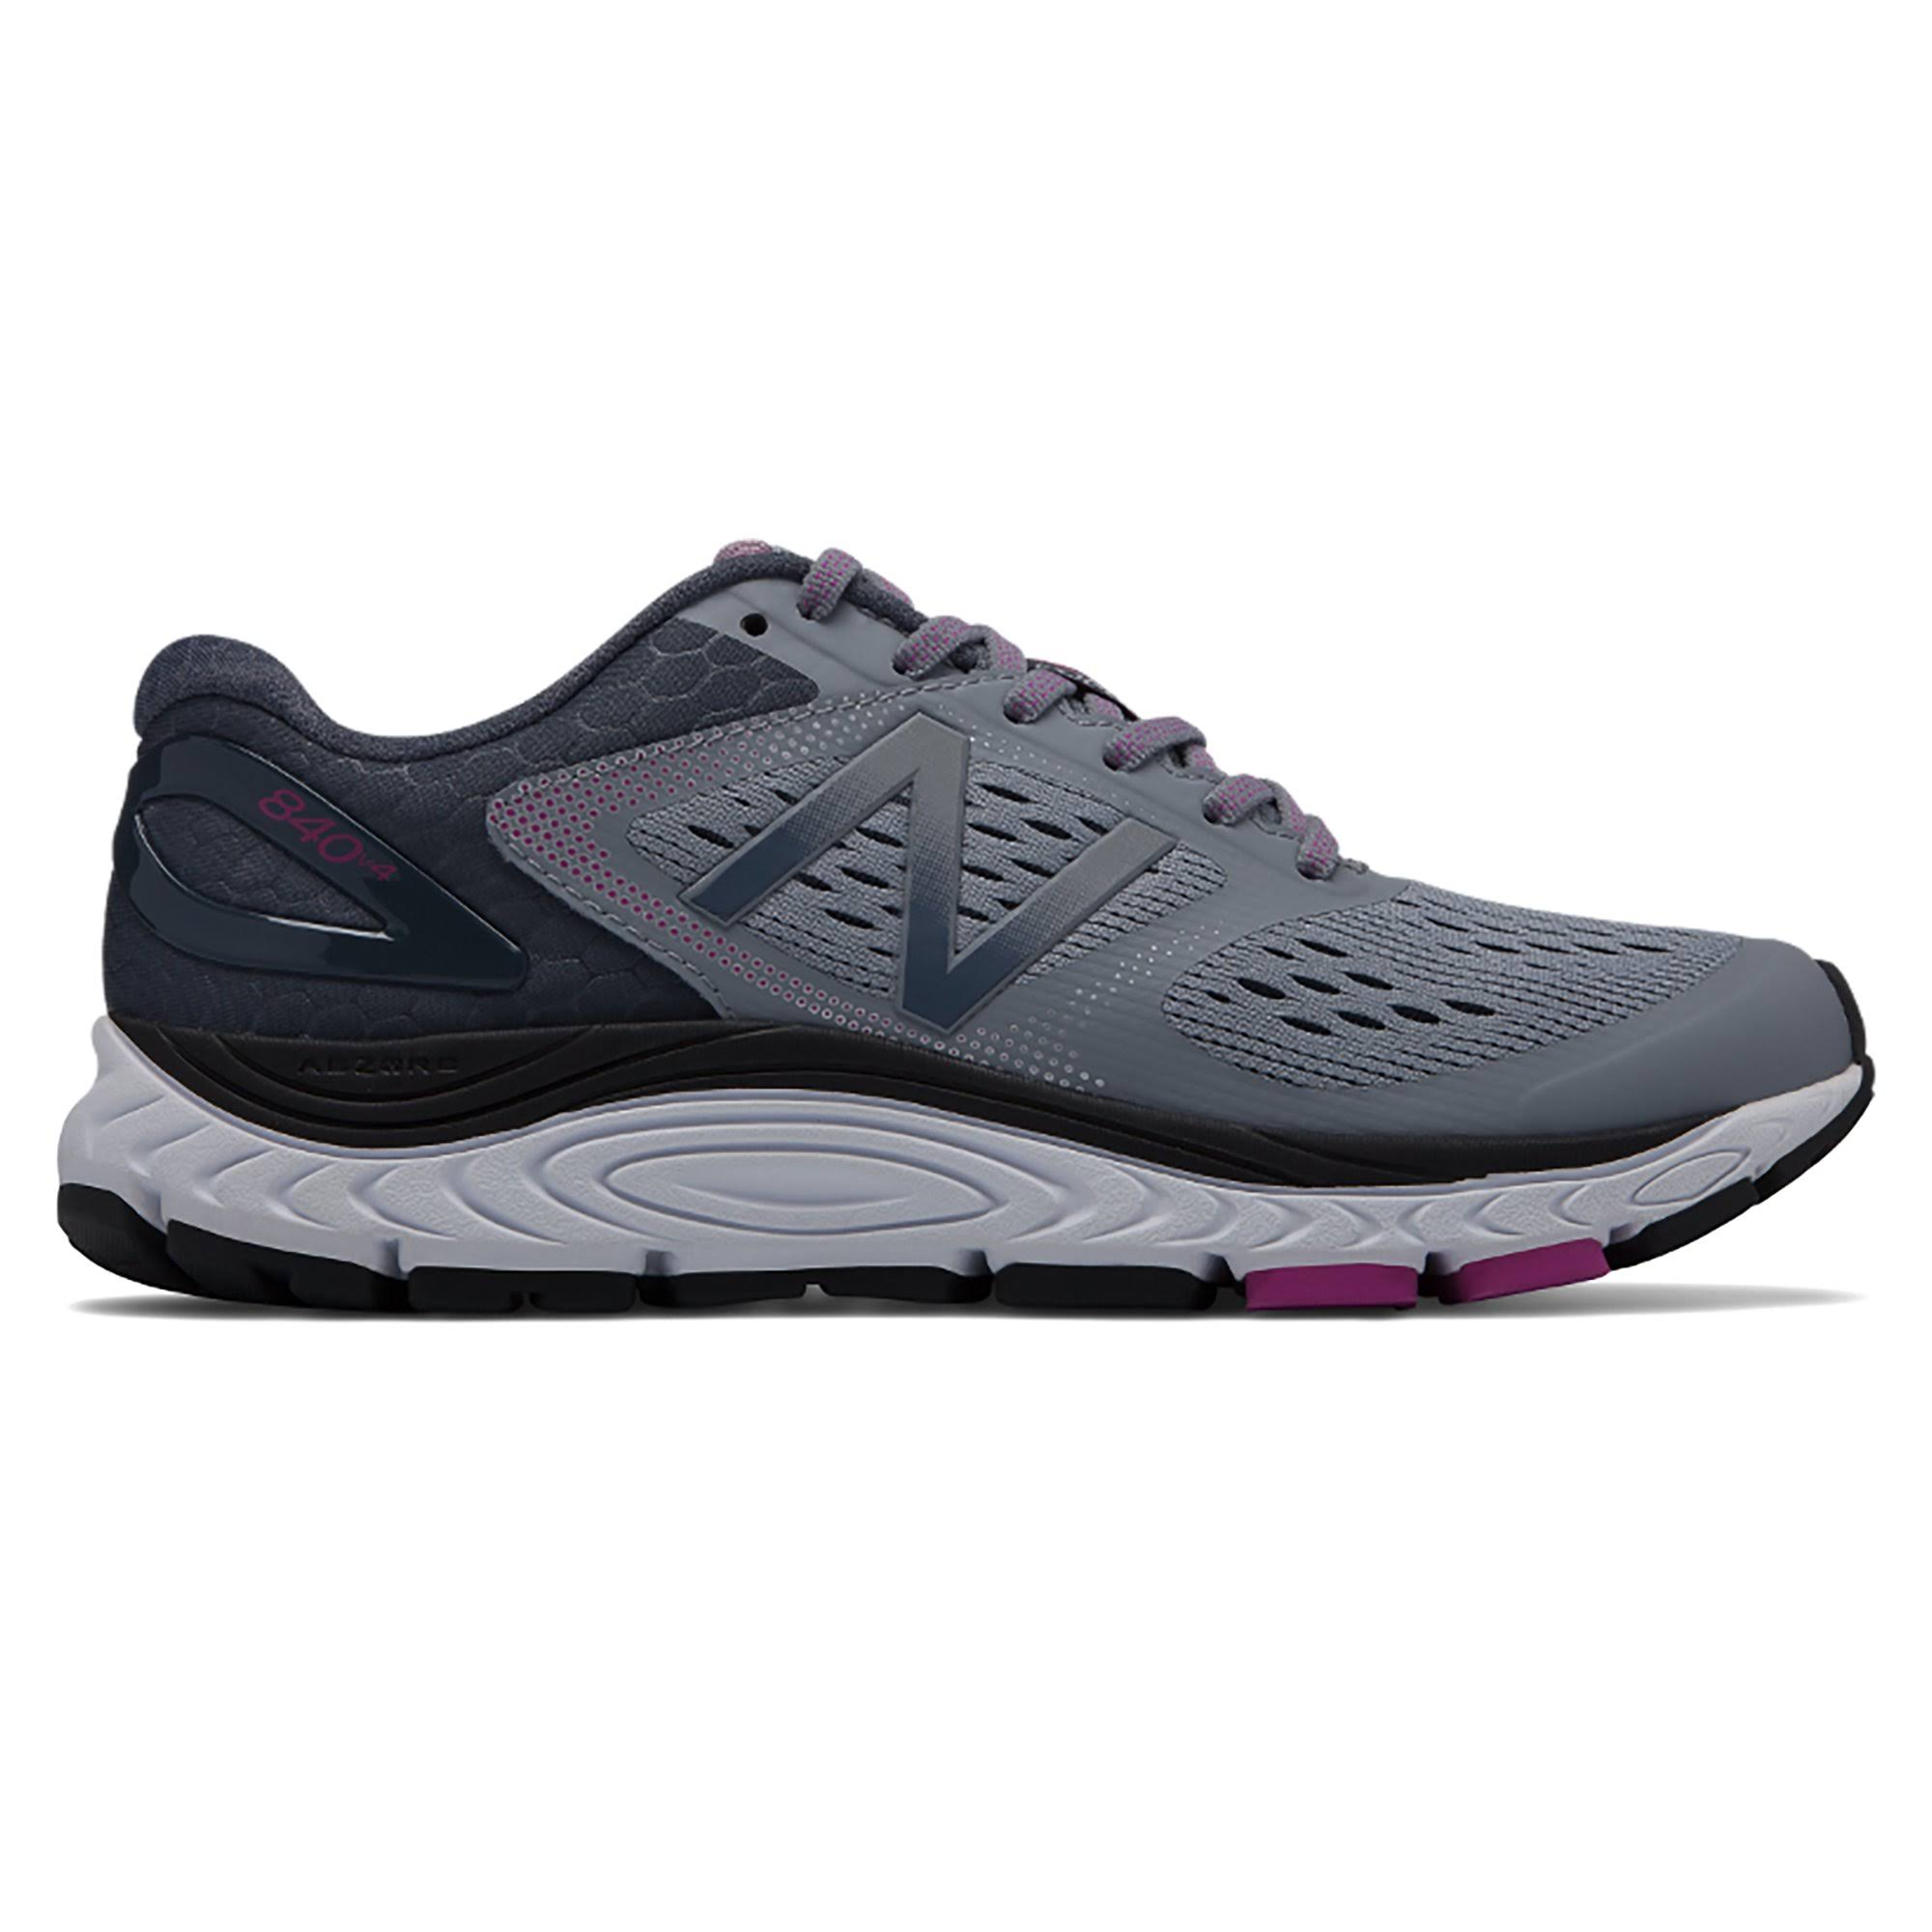 New Balance 840v4 Women's Running Shoes - Cyclone/Poisonberry, Size 10.5